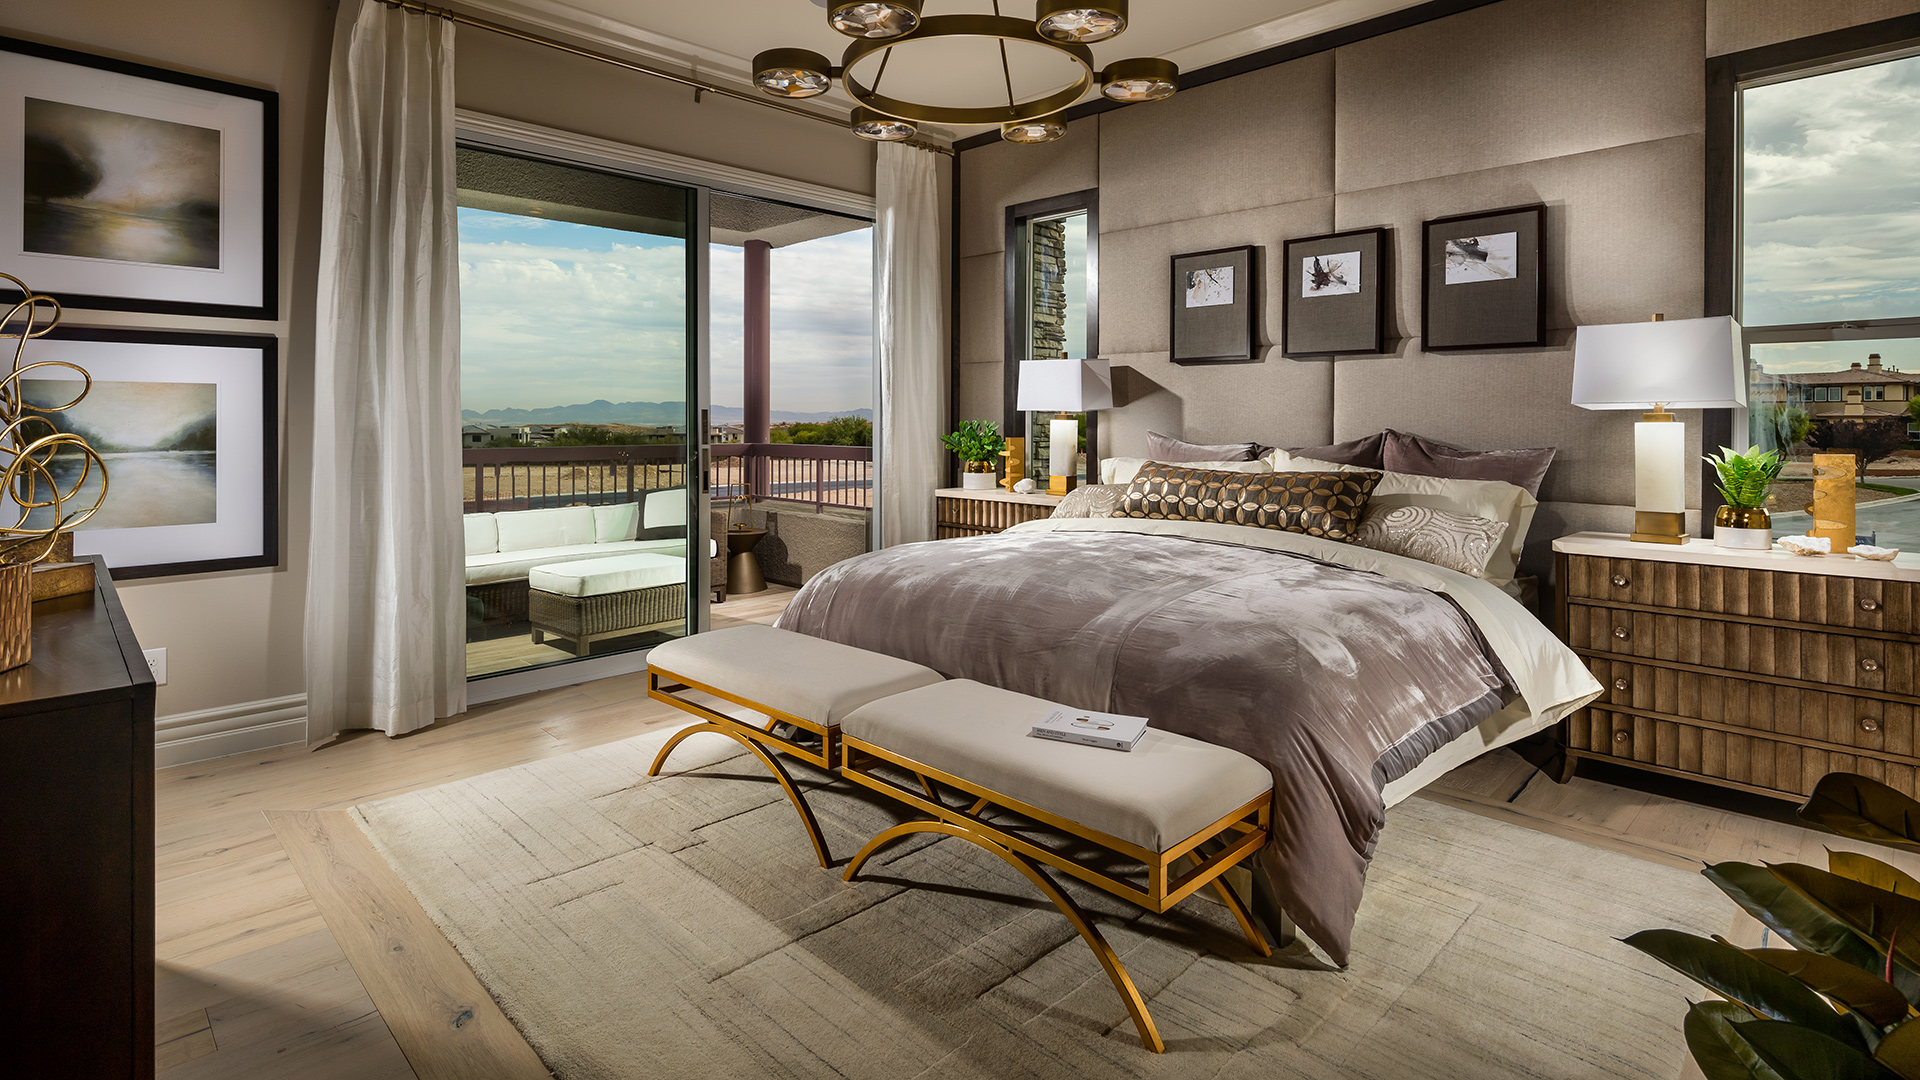 toll brothers summerlin - toll brothers new homes for sale - toll brothers granite heights homes for sale - toll brothers new construction homes las vegas - toll brothers las vegas